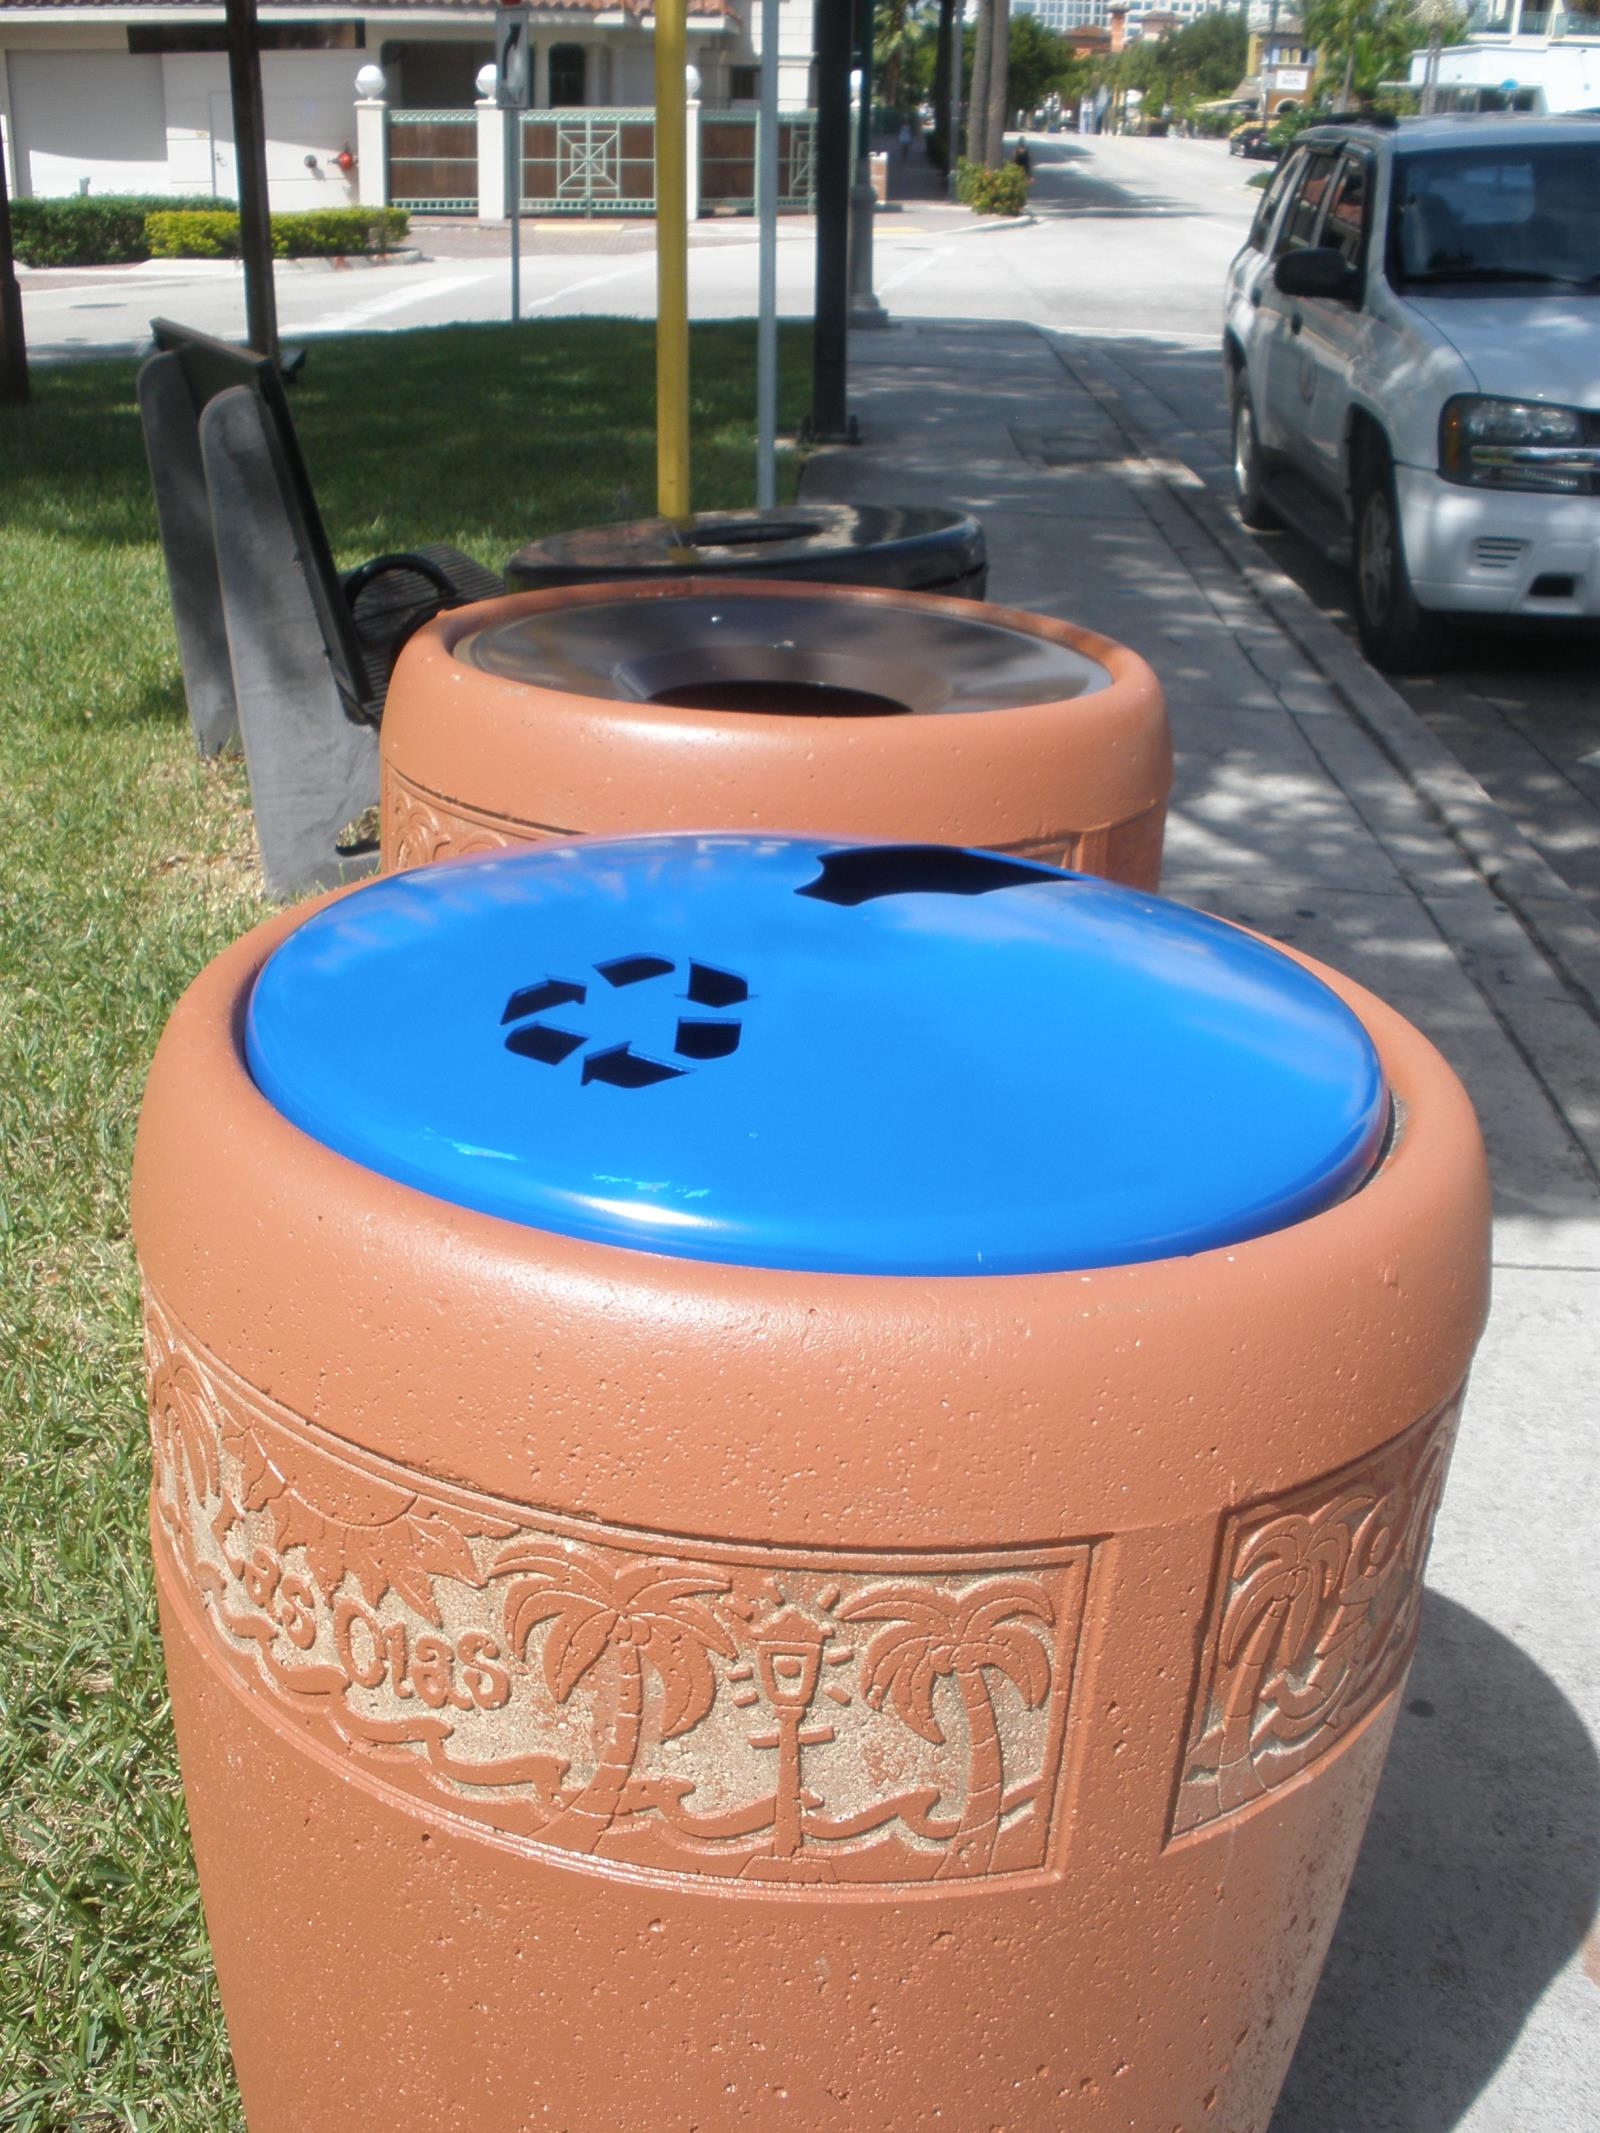 Customized Containers at a Las Olas Park